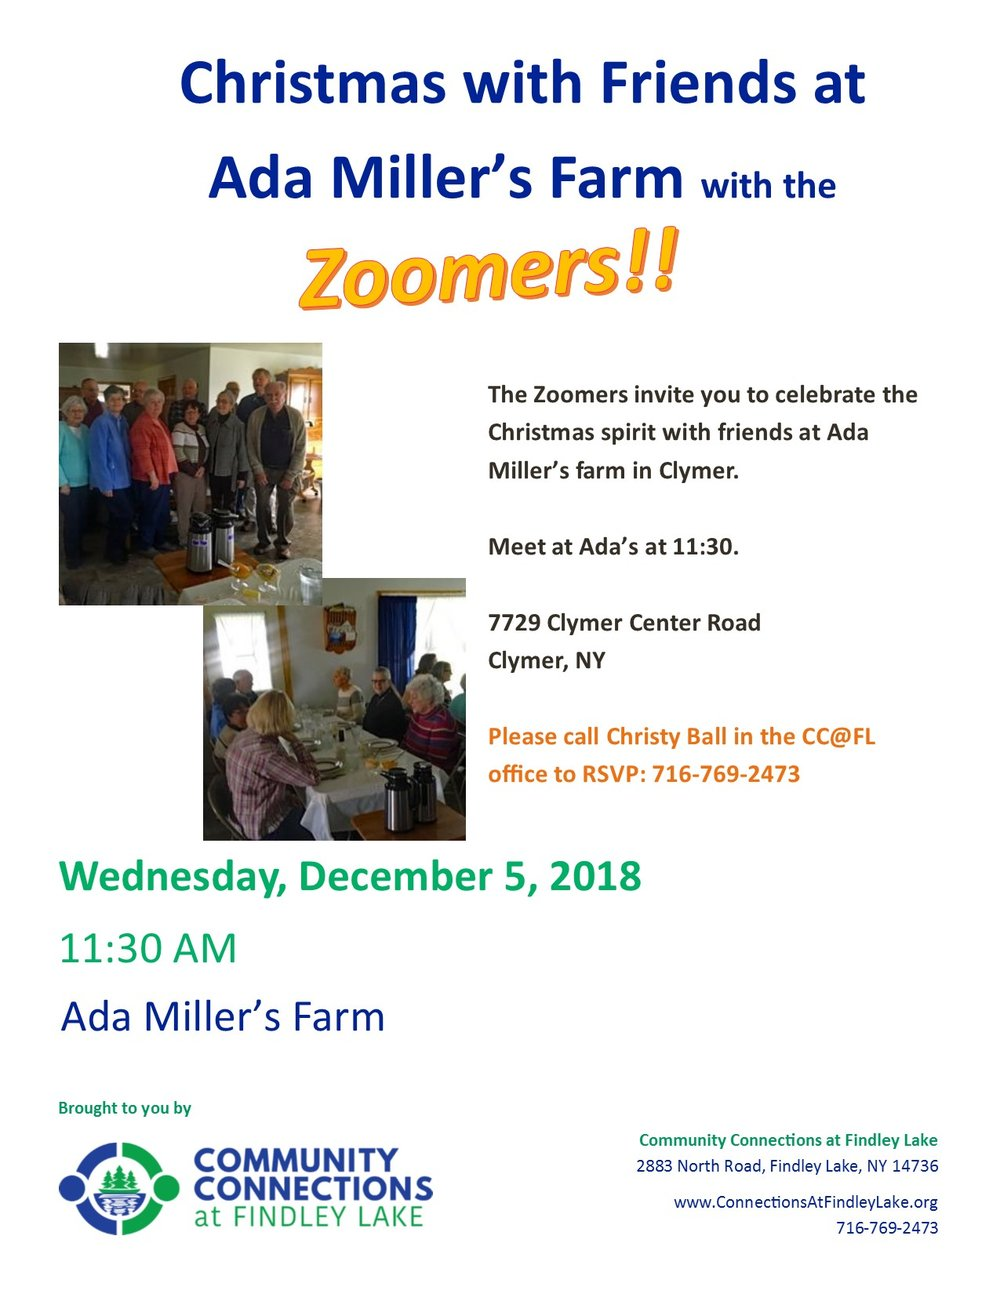 Zoomers Lunch at Ada Miller's Farm.jpg